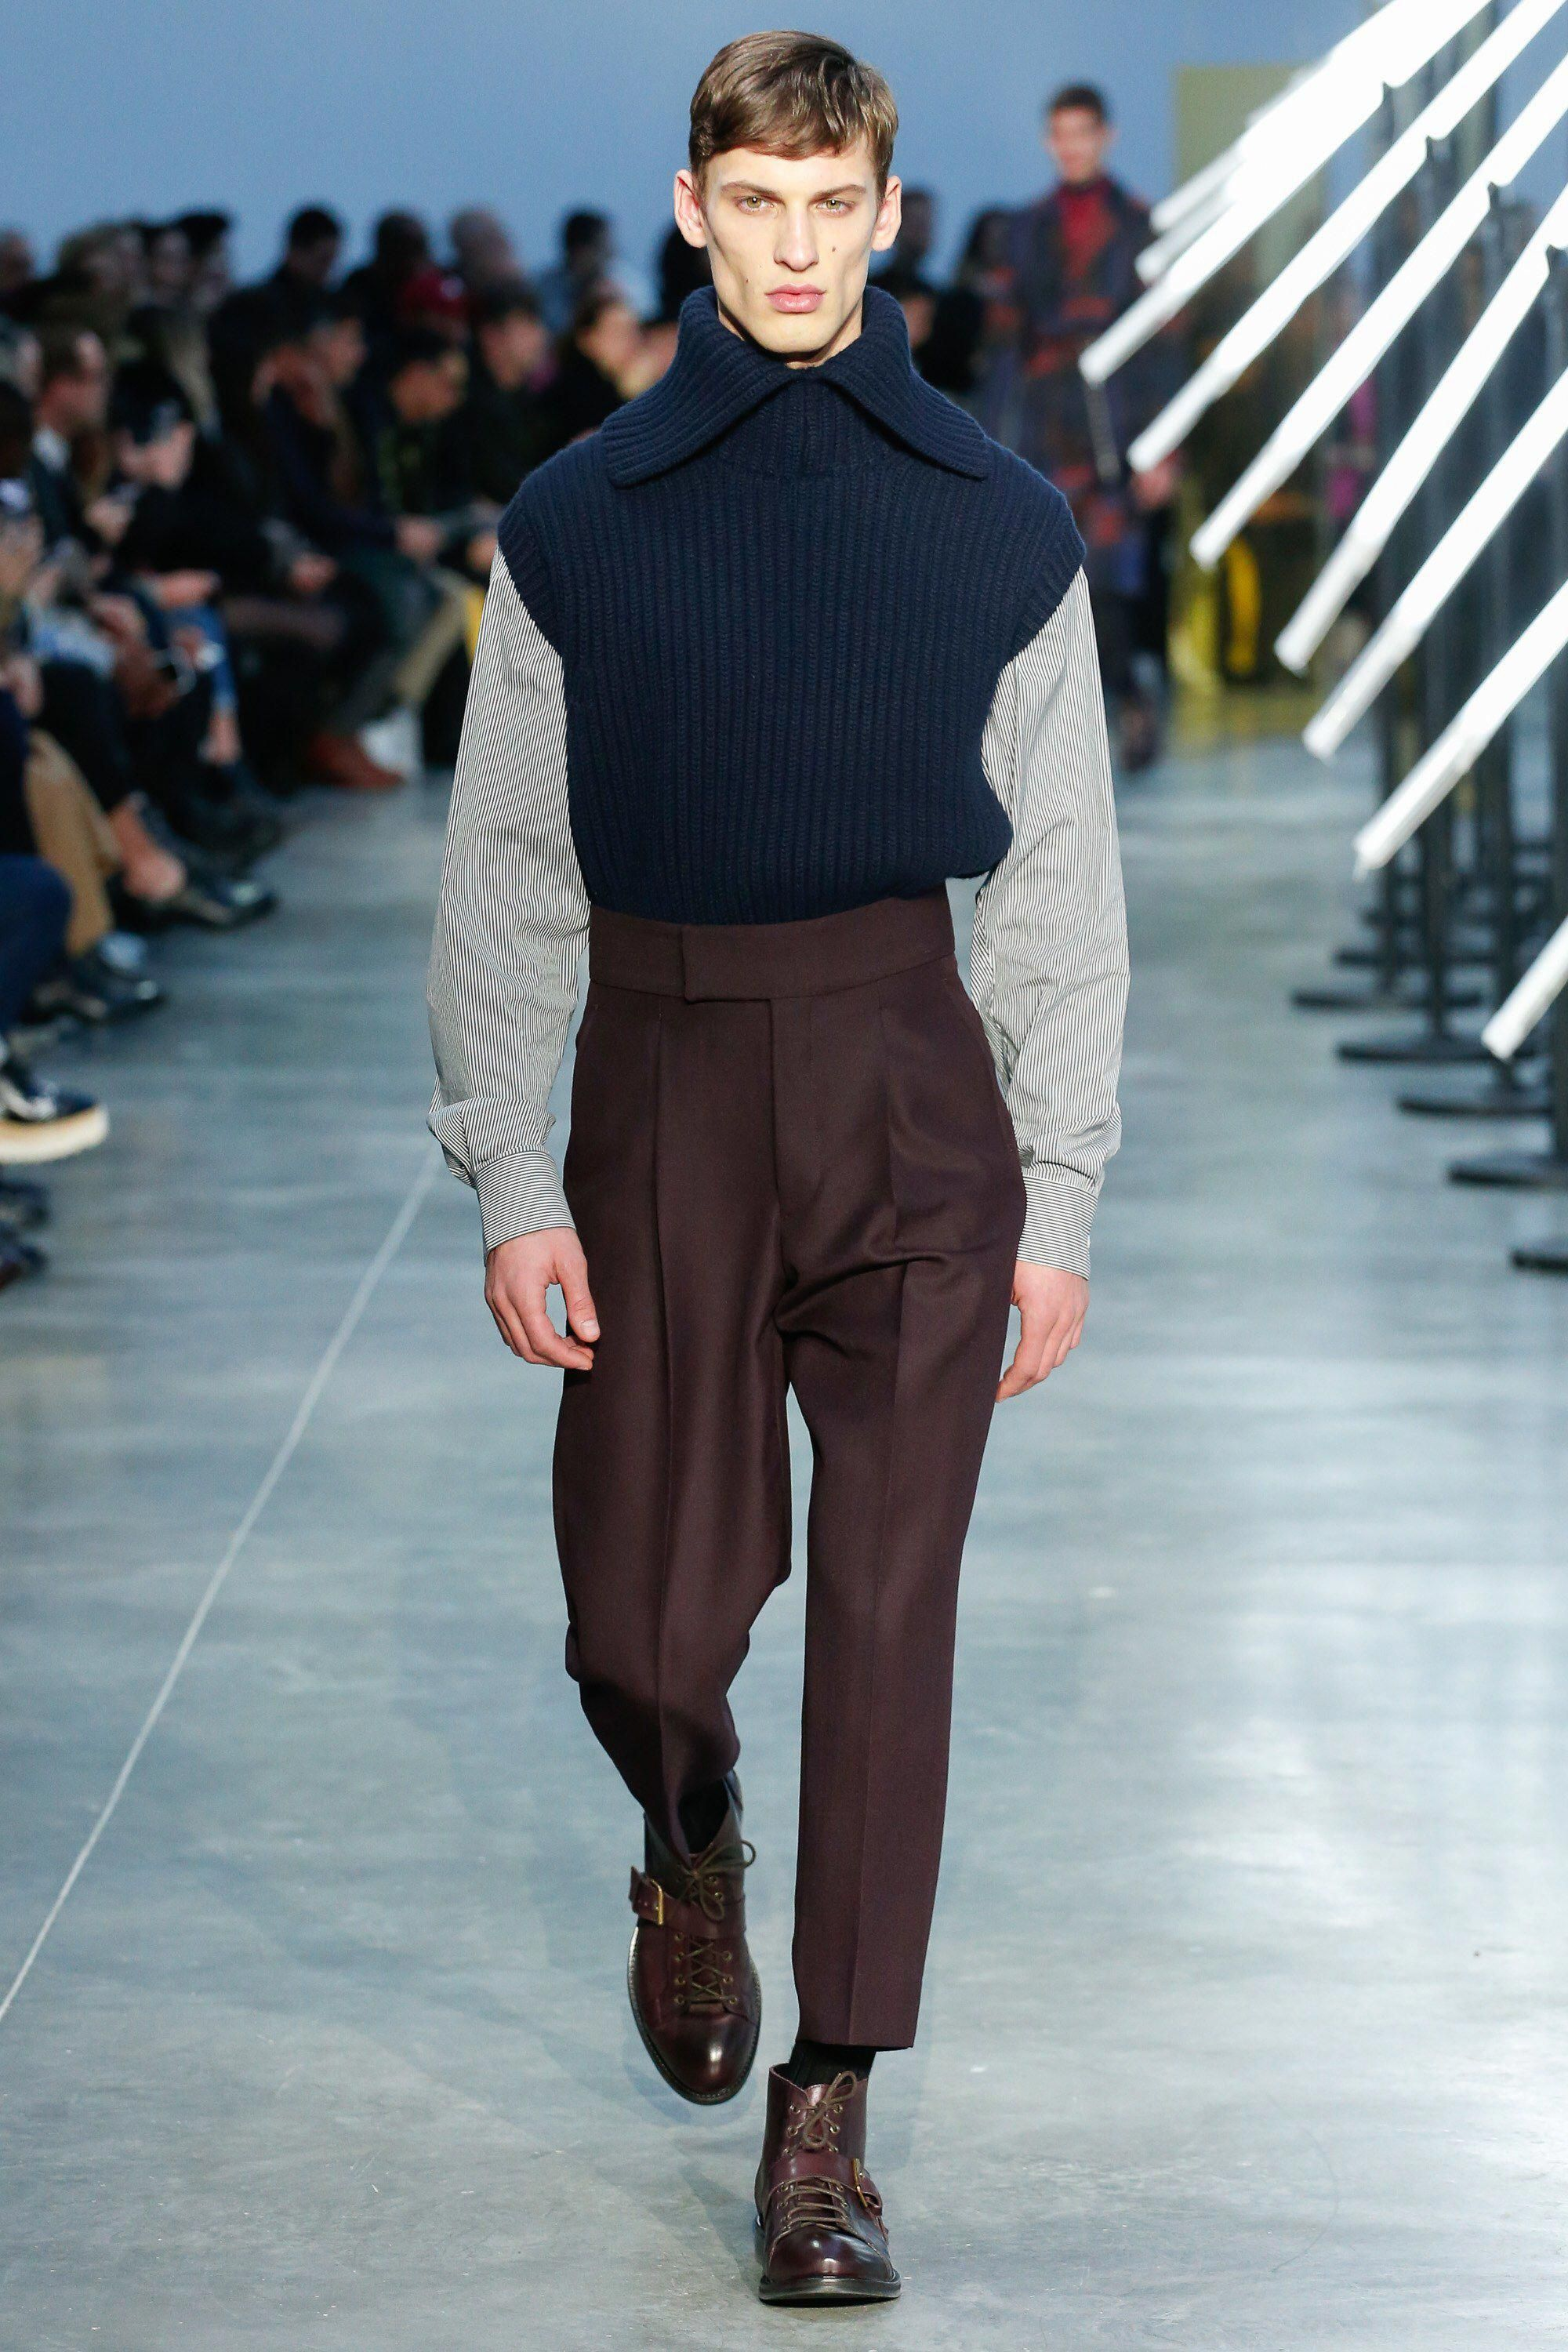 Cerruti fall menswear fashion show collection